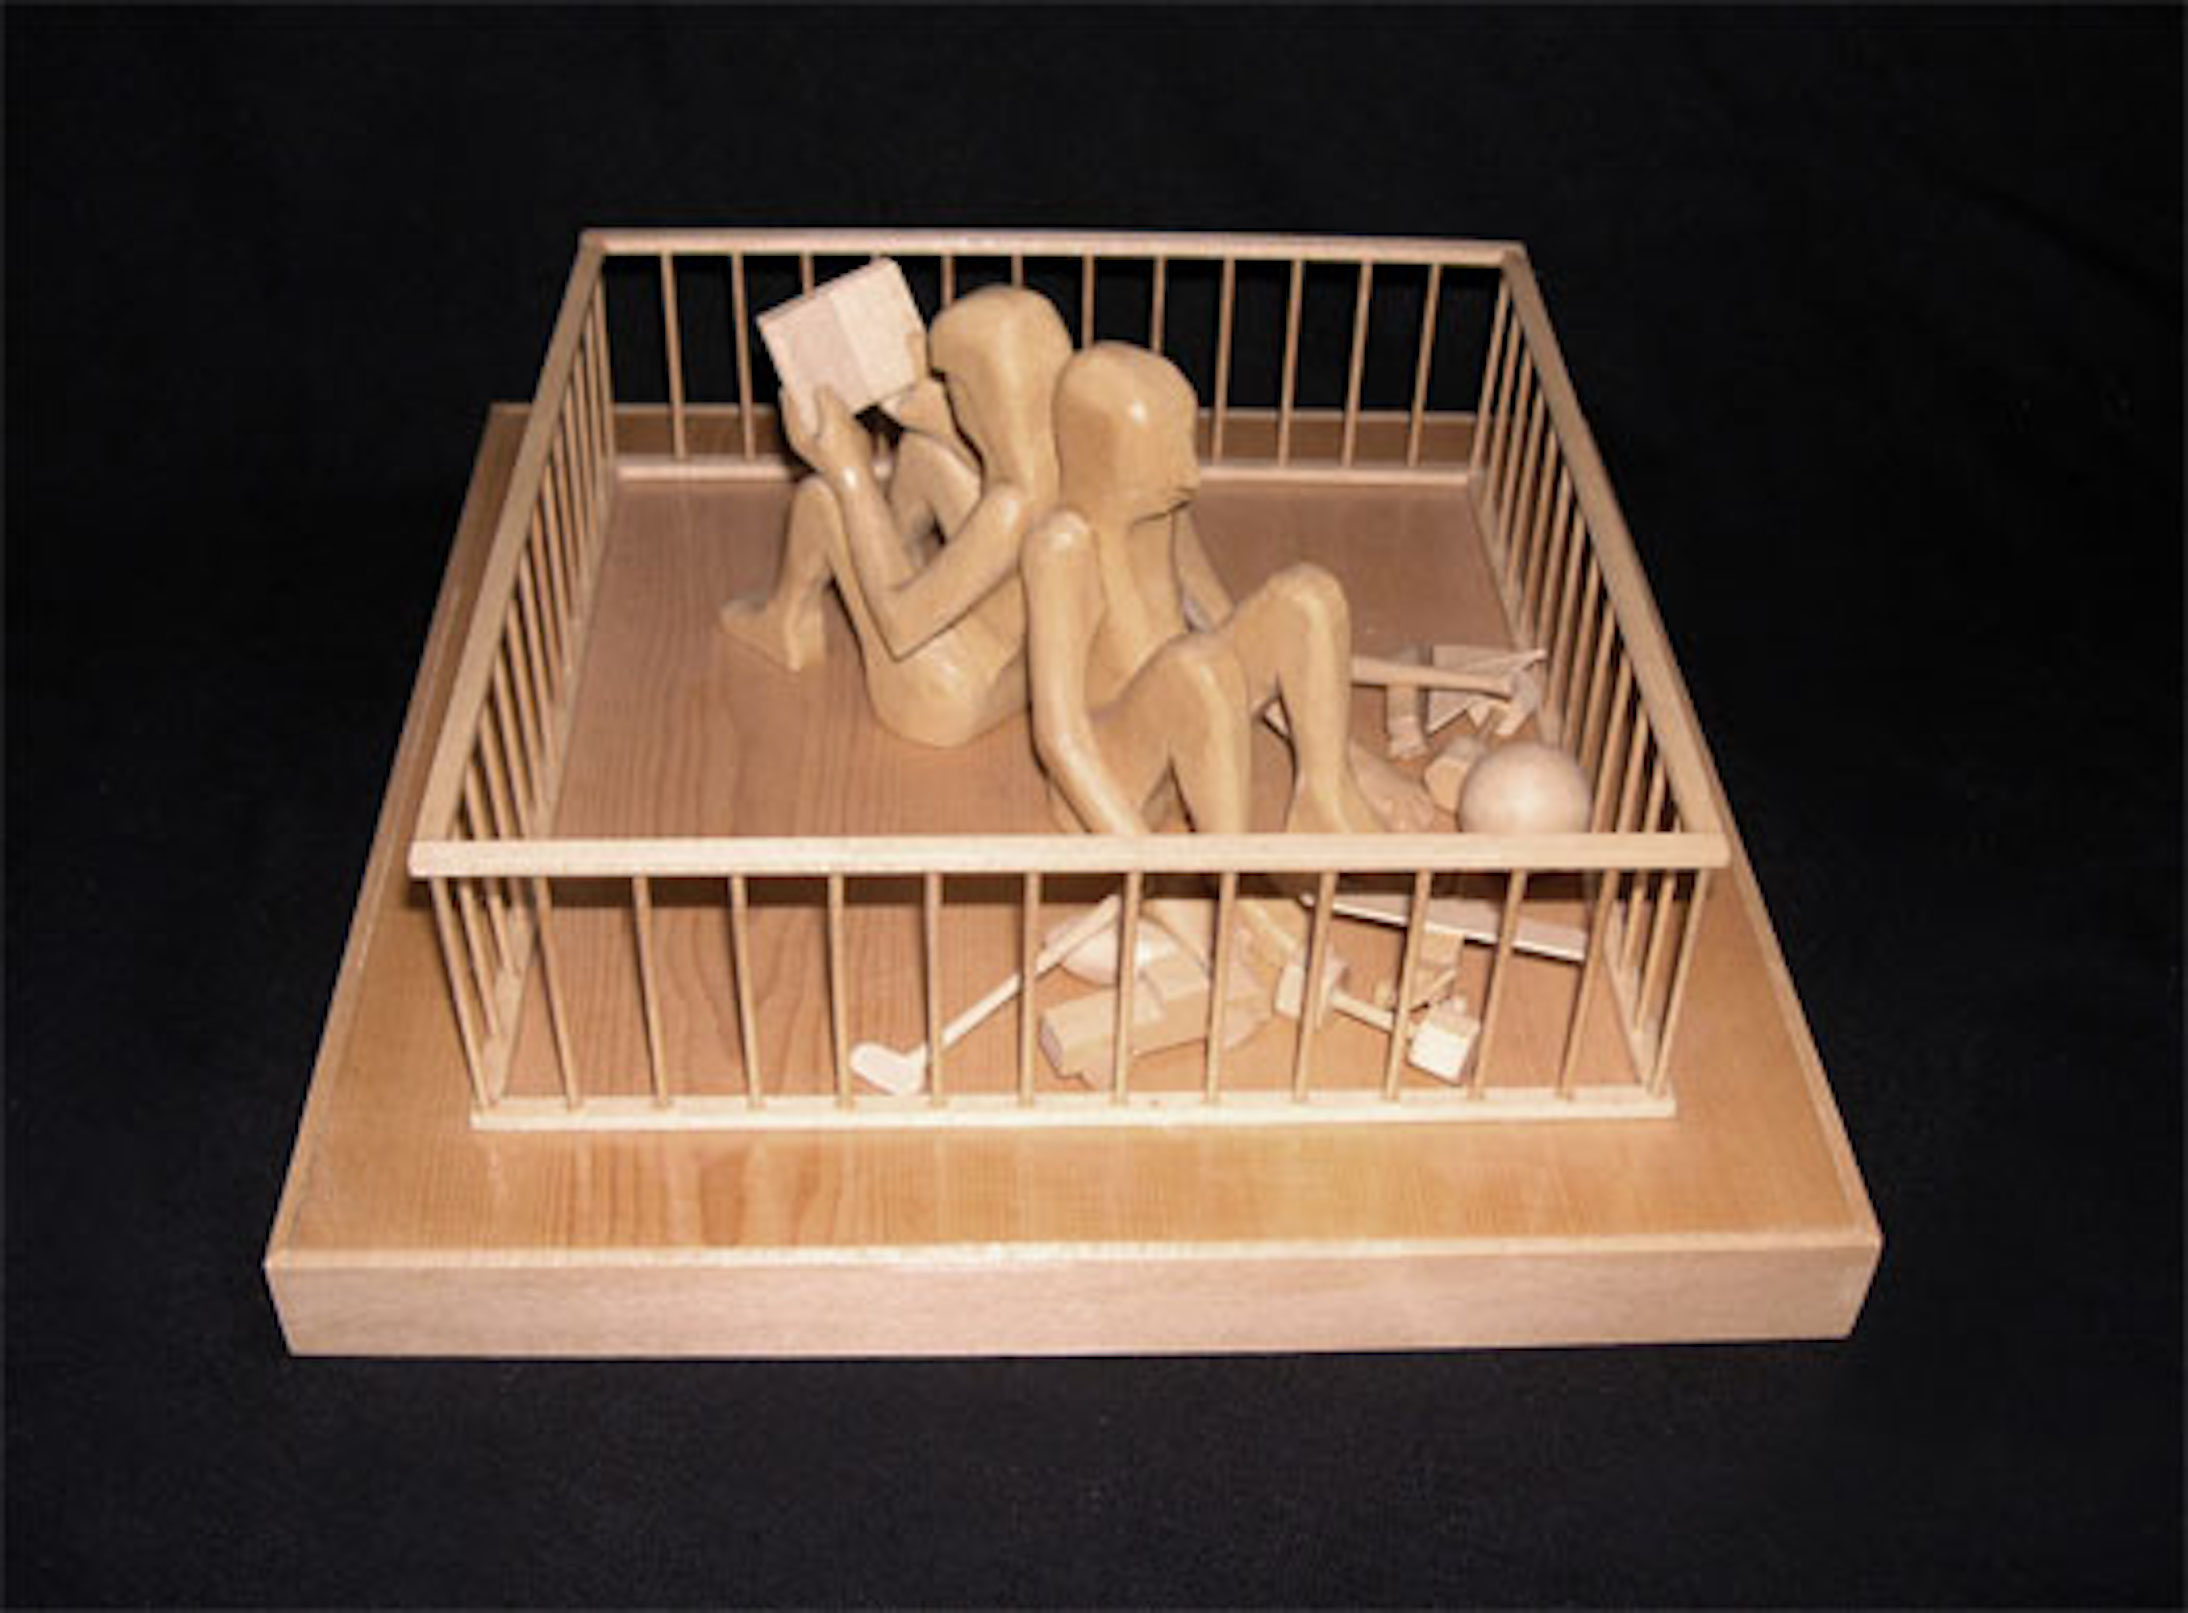 """Man and Woman in Playpen, 2000, pine wood, 4 7/8 x 10 3/8 x 10 3/8"""""""